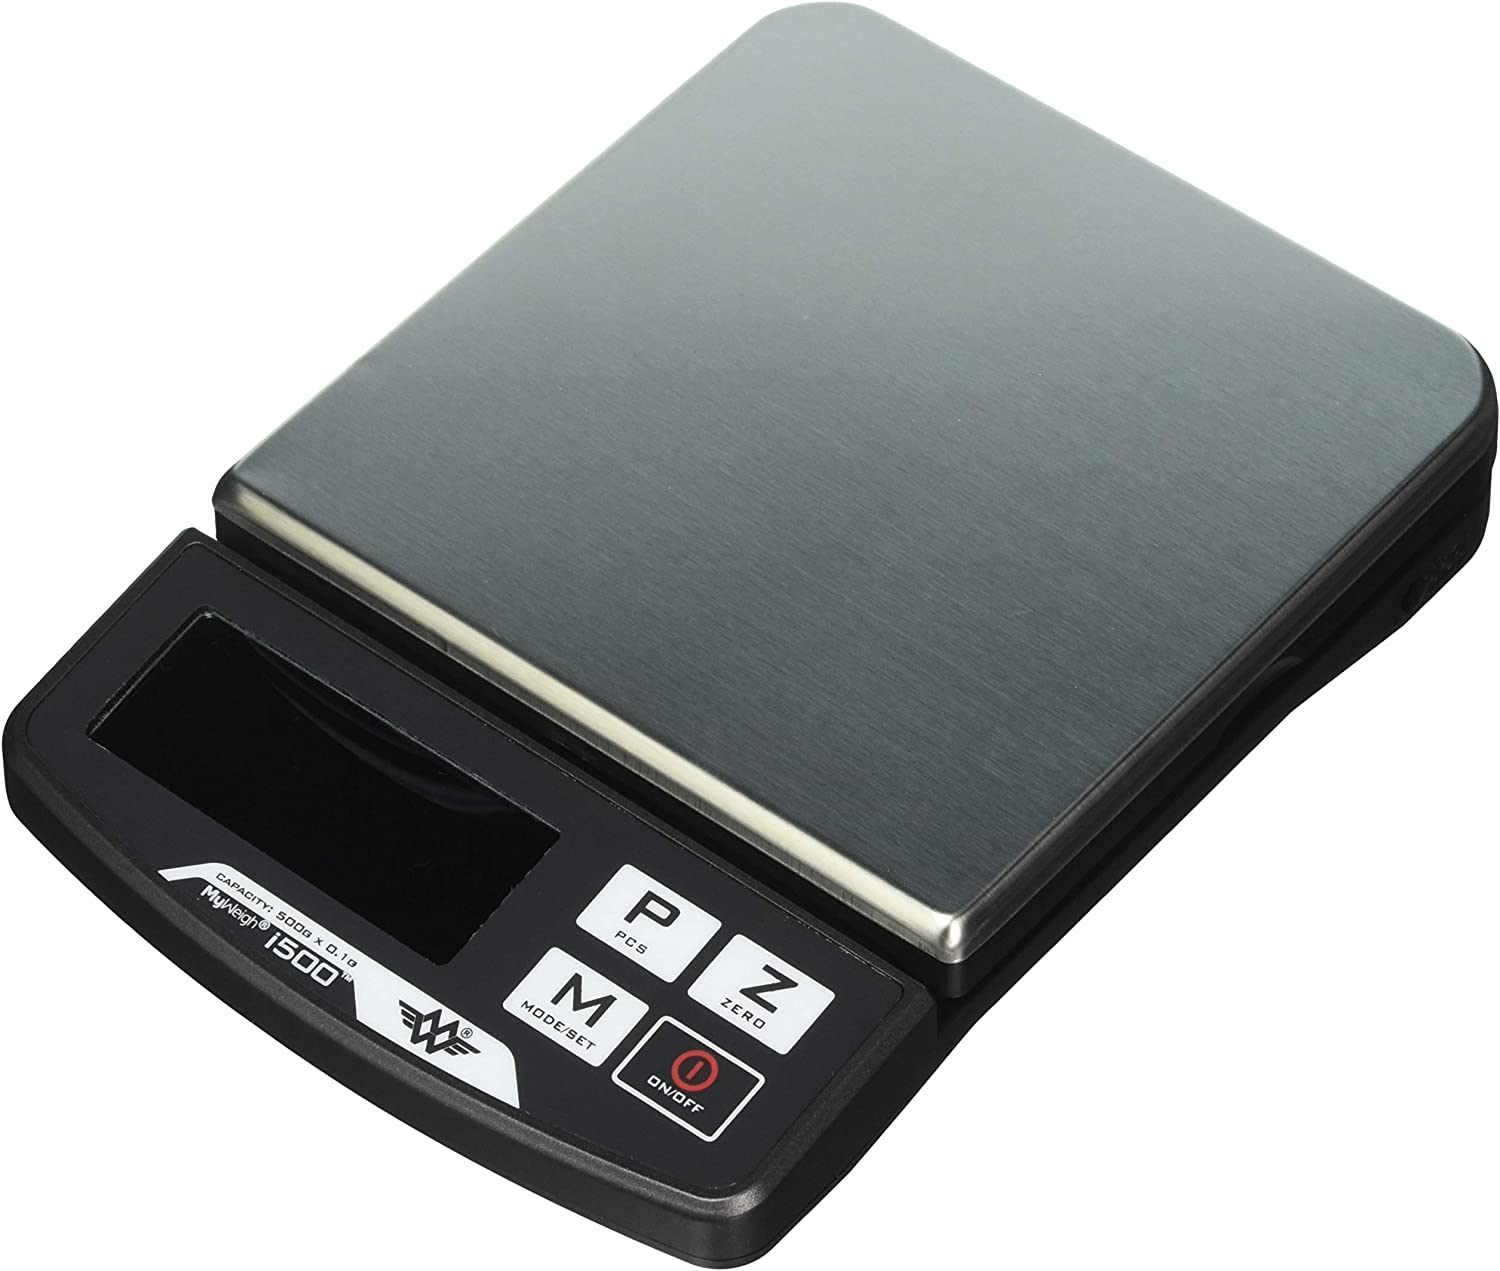 My Weigh iBalance i500 Digital Kitchen Scale Bowl 500g x 0.1g Parts Counting AC Adapter SCM500